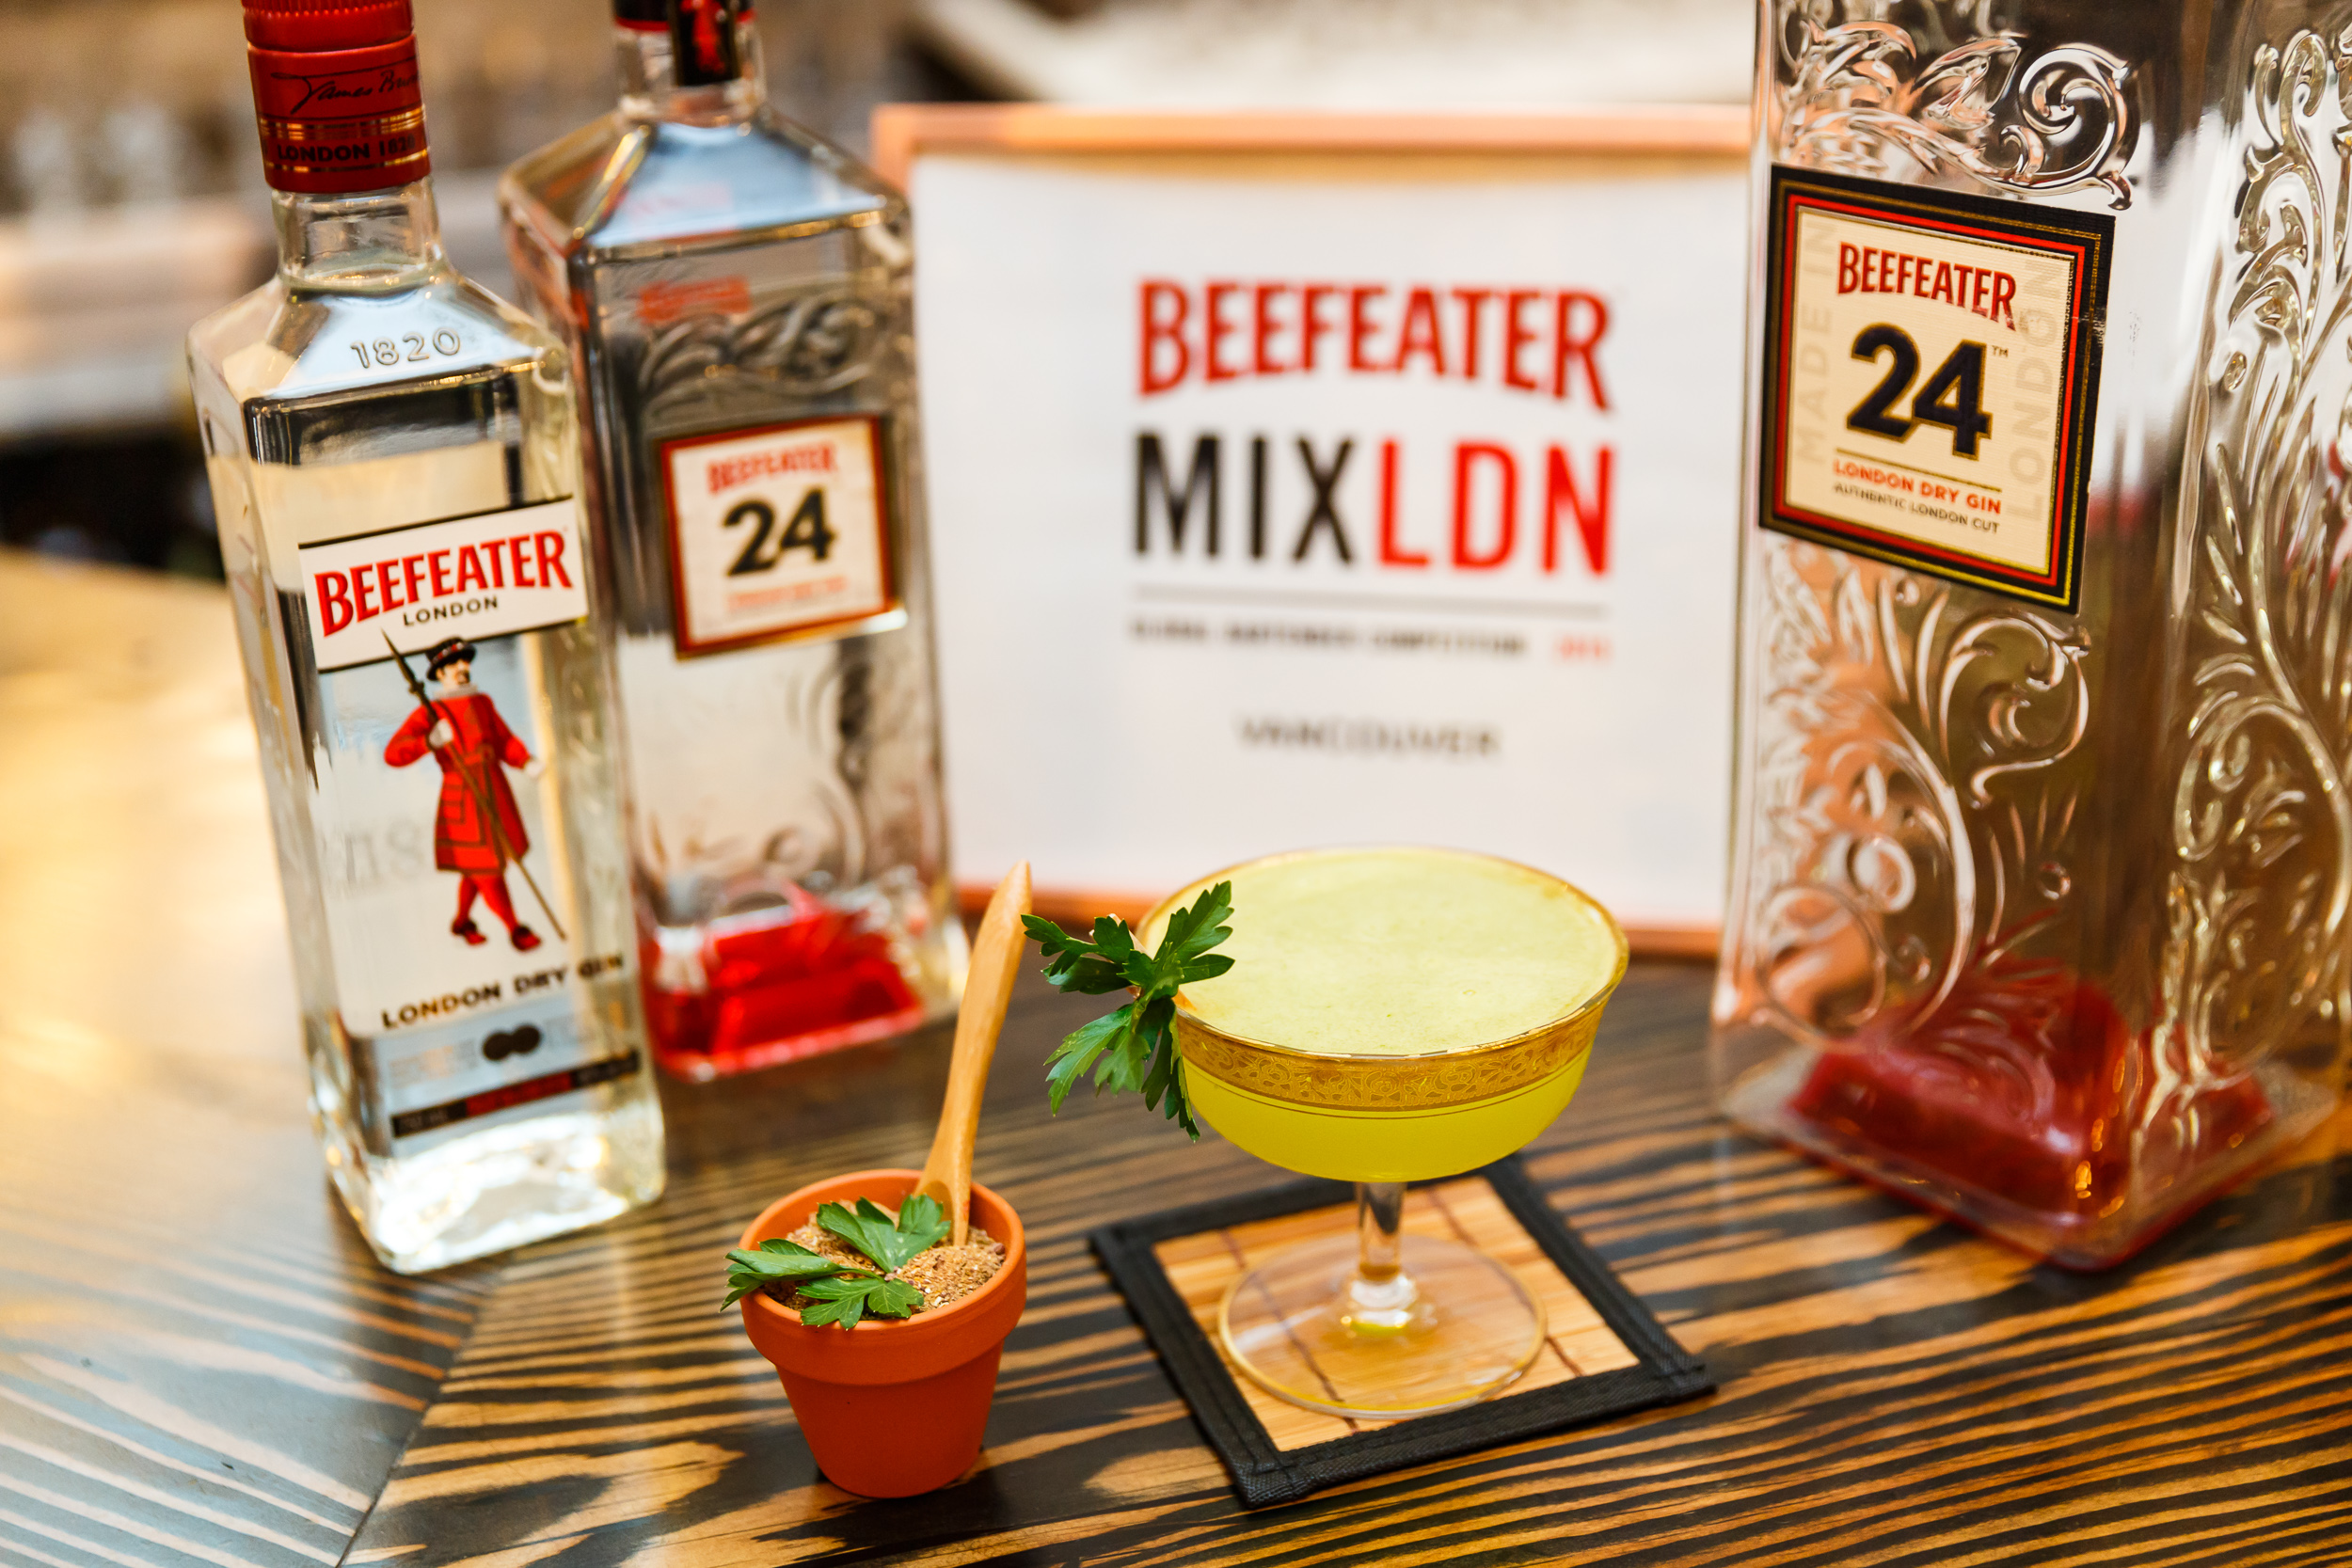 Beefeater-MIXLDN-photo-30.jpg